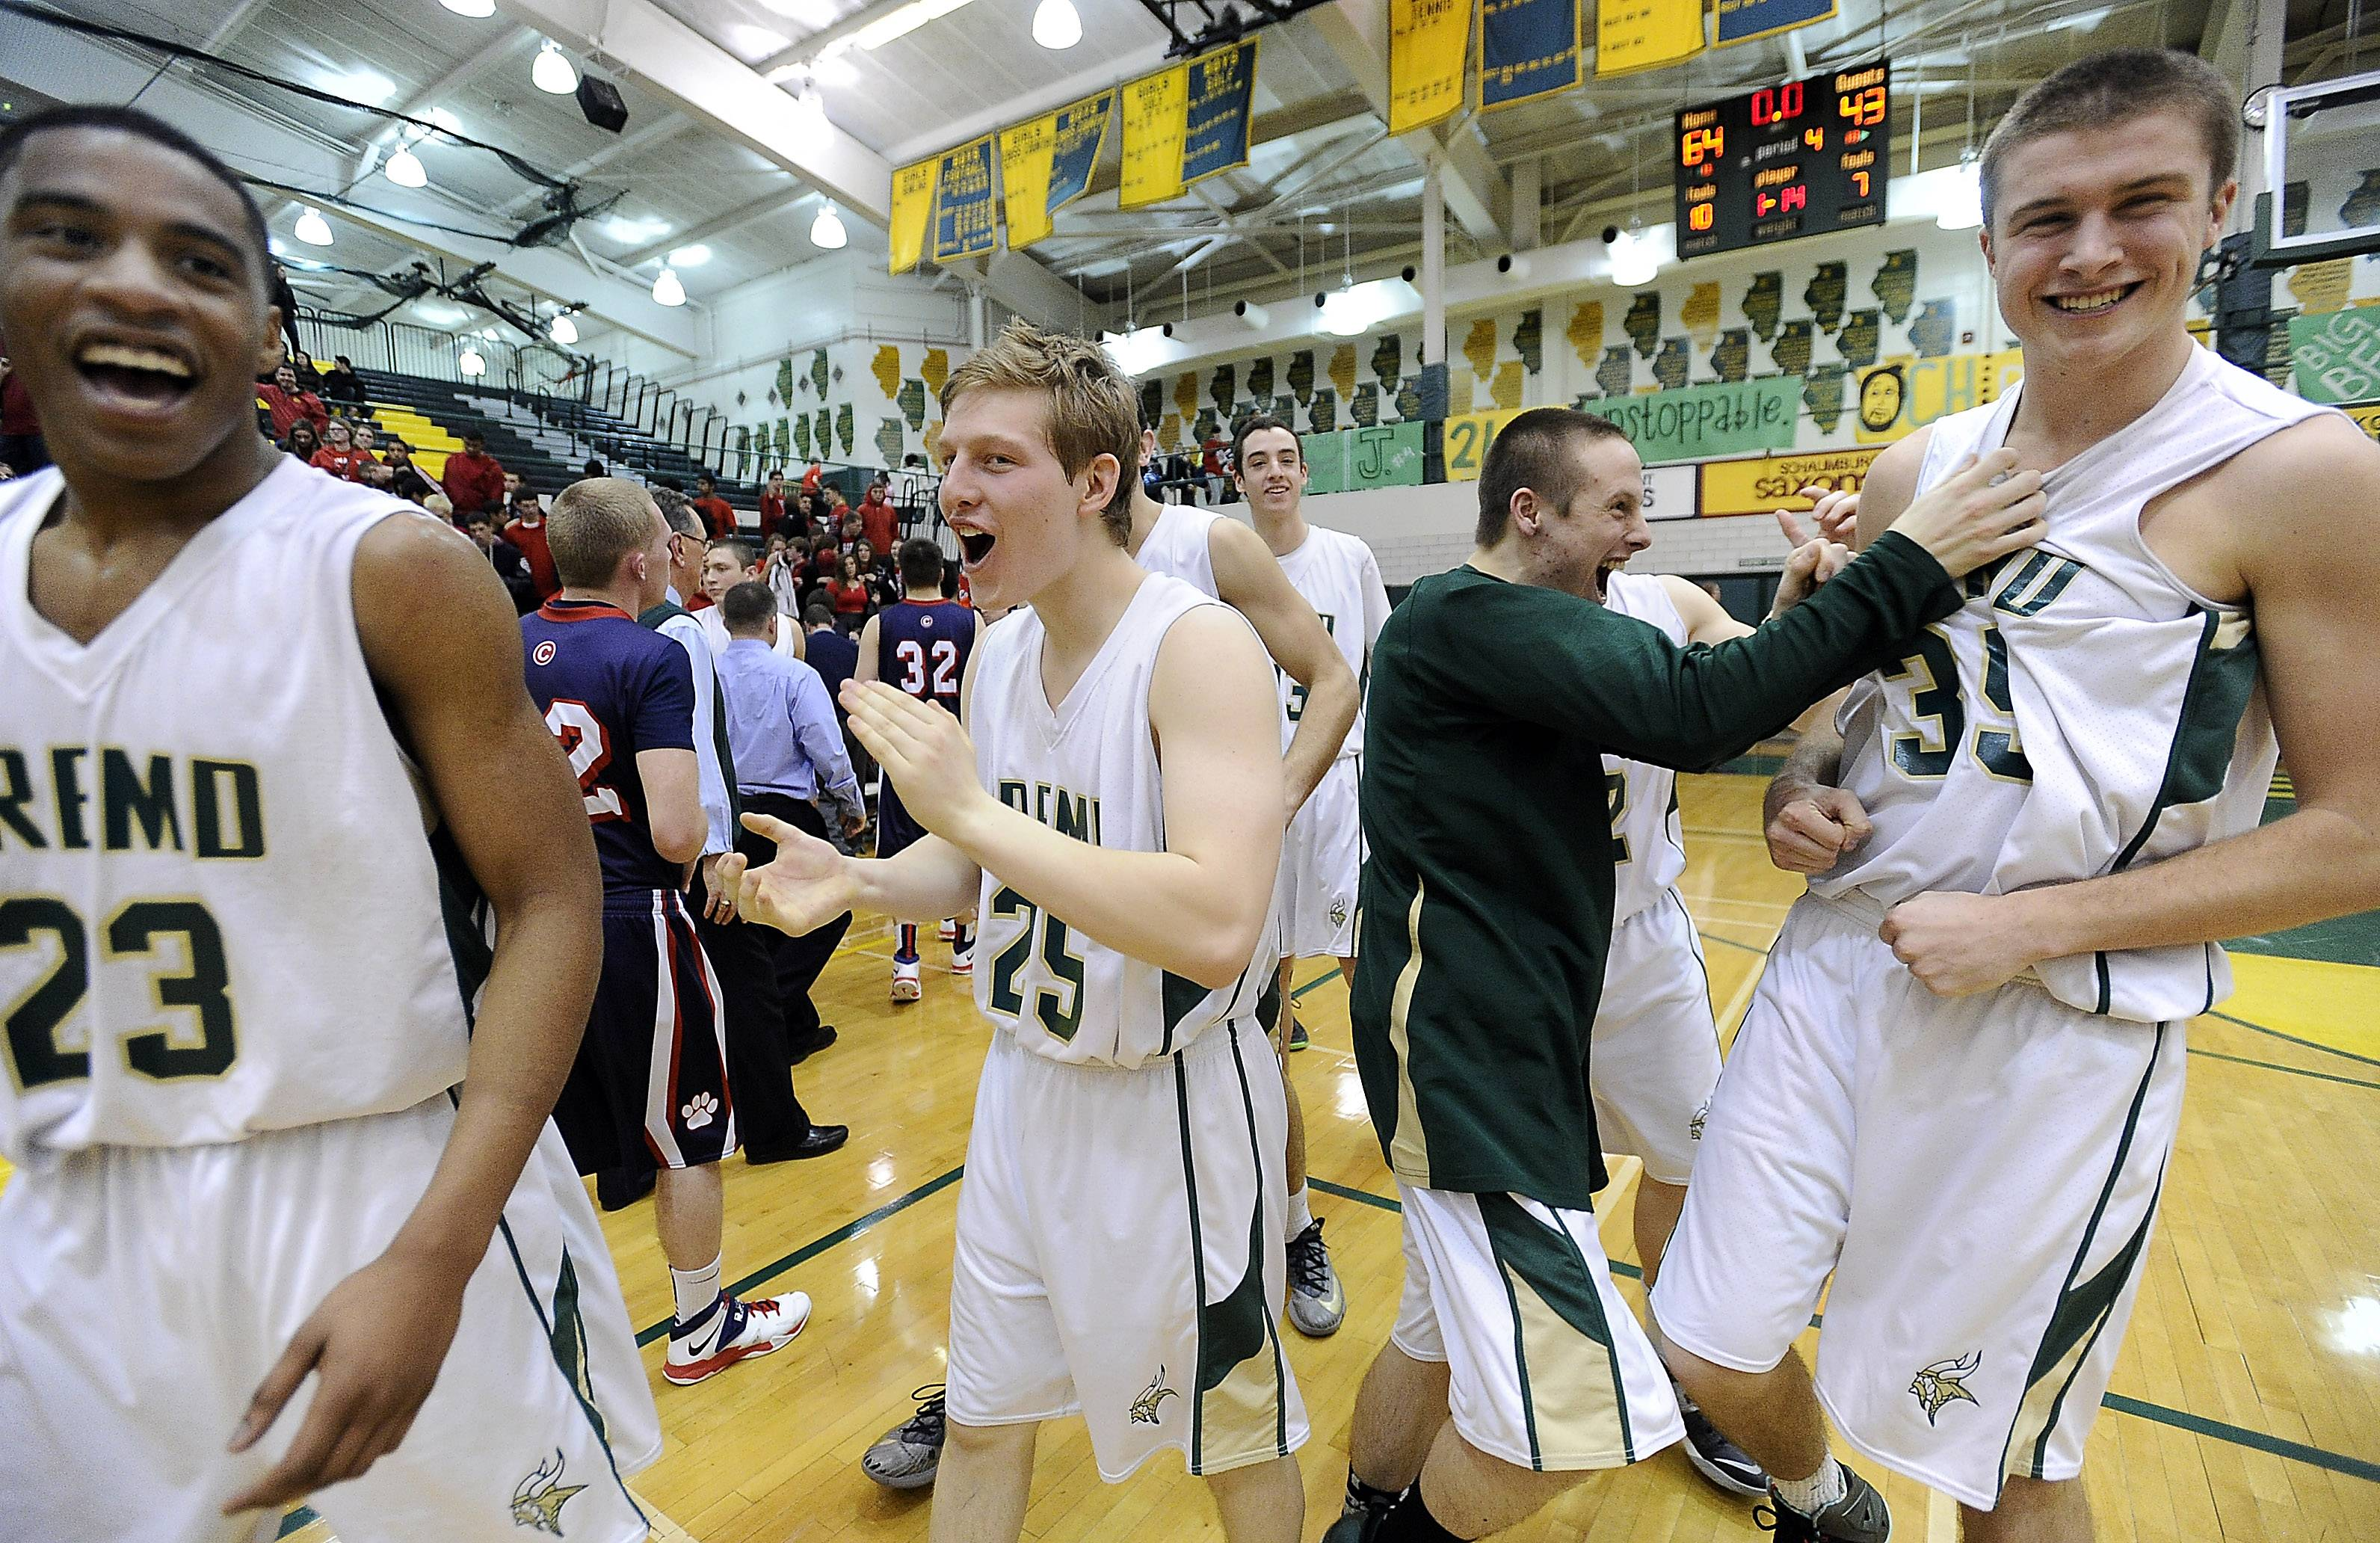 Fremd players celebrate after beating Conant to wrap up the MSL West title at Fremd on Friday.